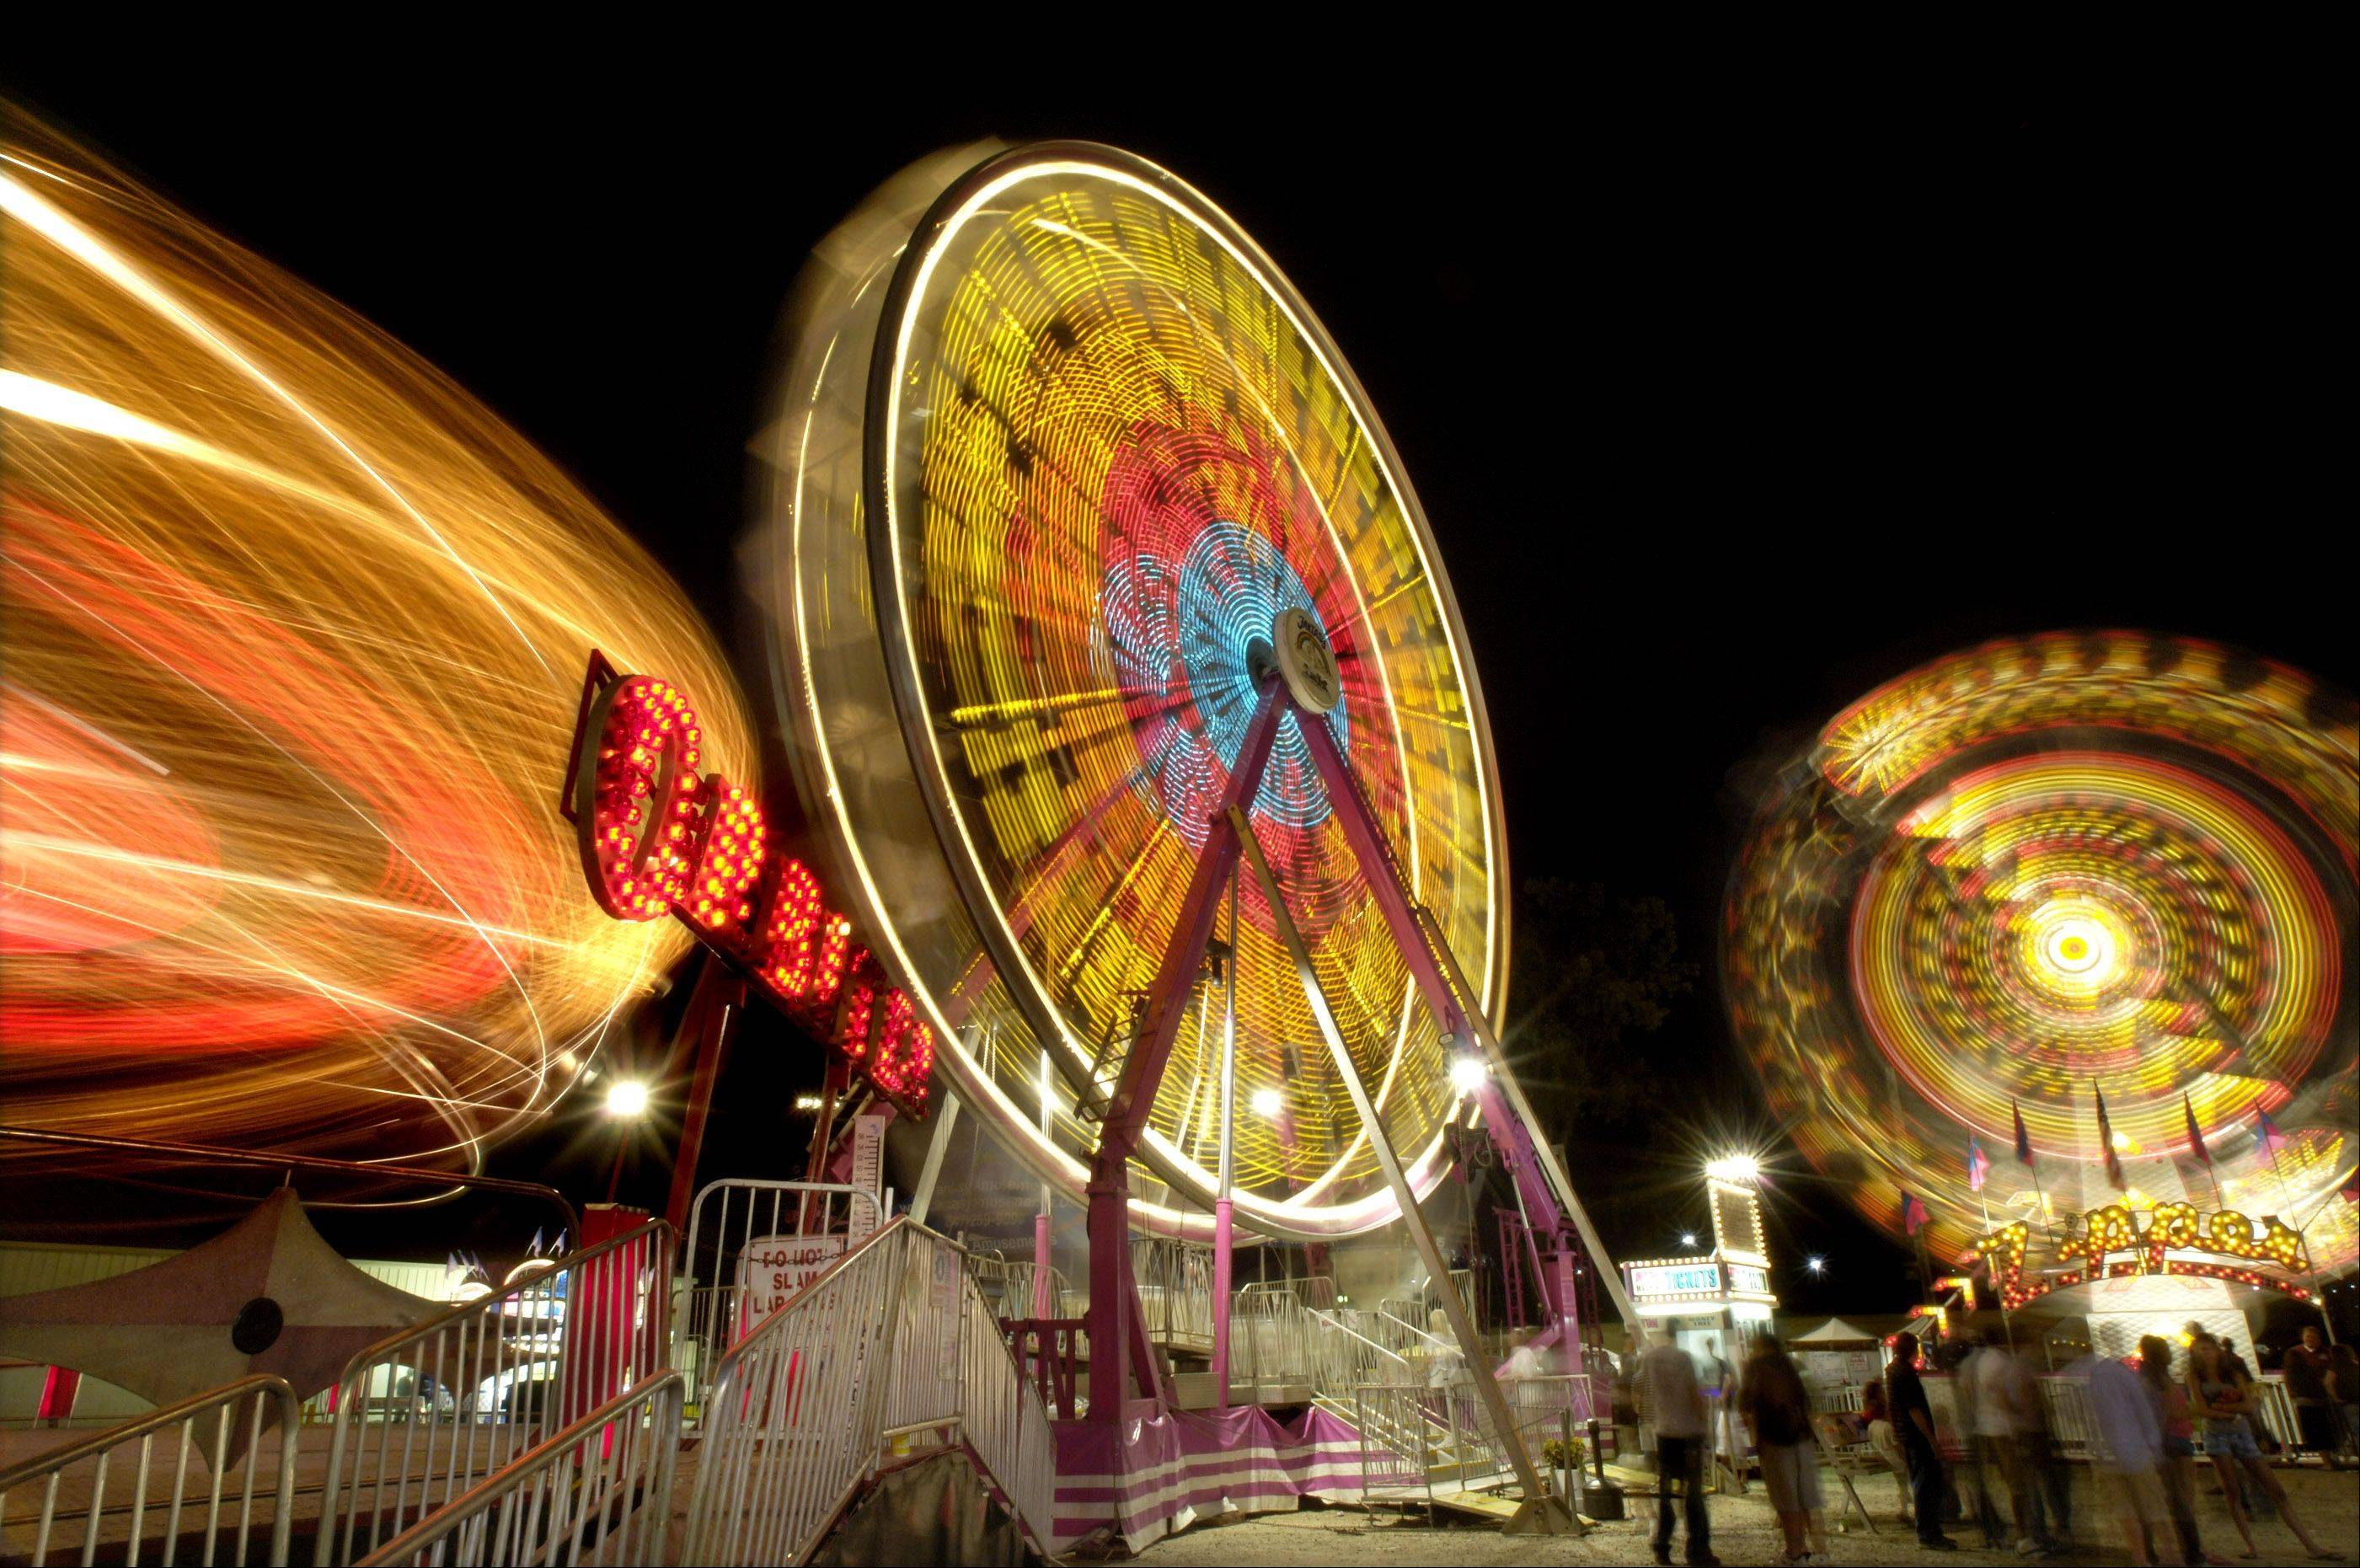 Like all midway rides, Orbiter, left, the Ferris wheel, and the Zipper, at right, spin in a regular pattern, and they light up like Christmas trees. The midway will be lit up with rides beginning Wednesday, July 17, when the Kane County Fair opens.